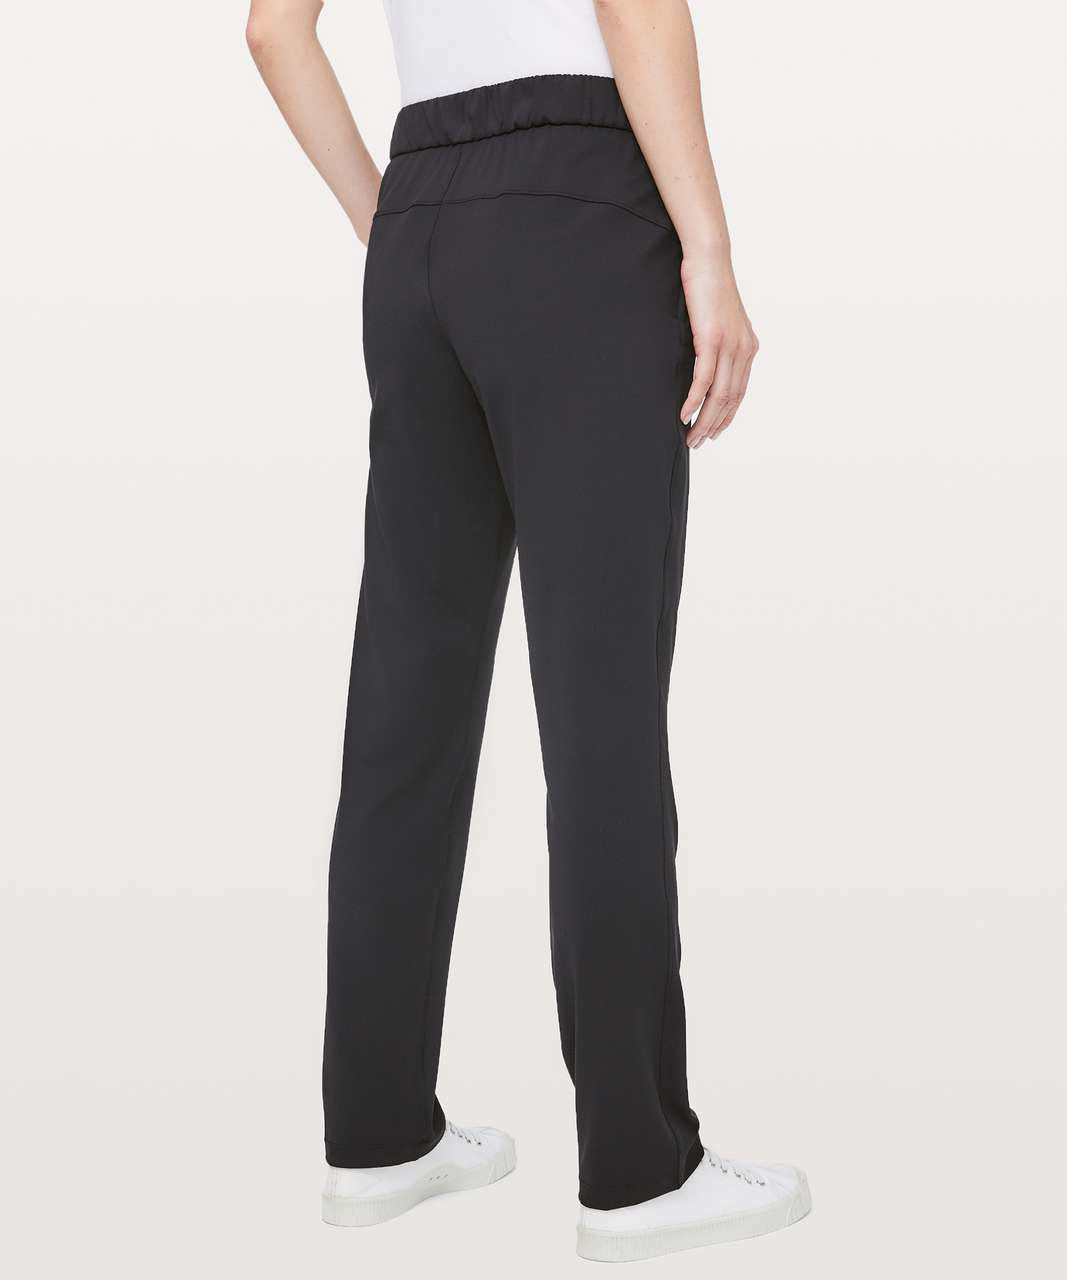 "Lululemon On The Fly Pant Full Length 31"" - Black"